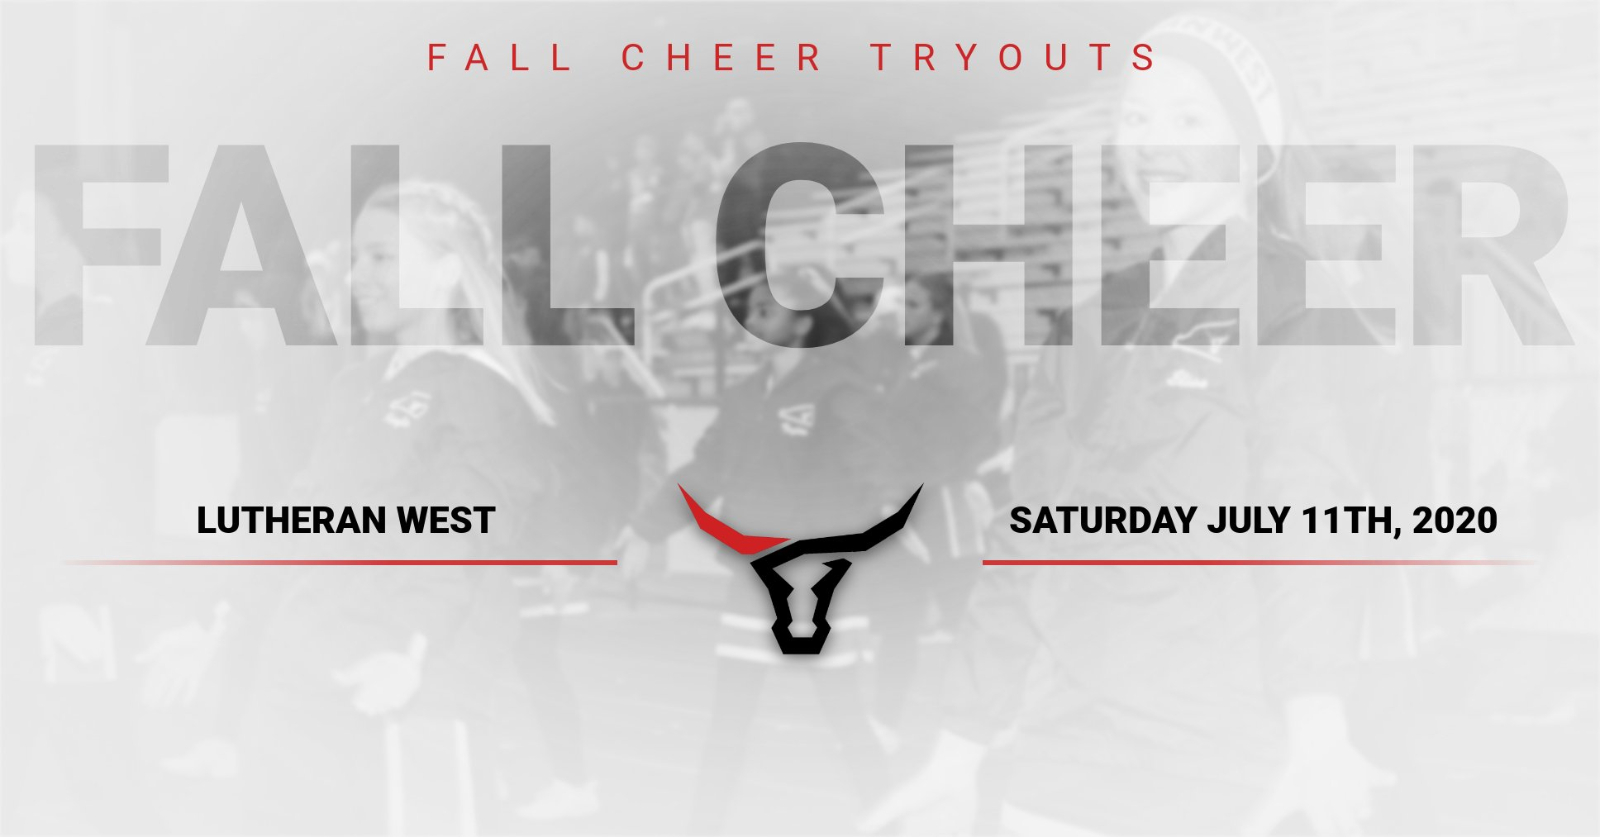 Fall Cheer Tryout Date Announced